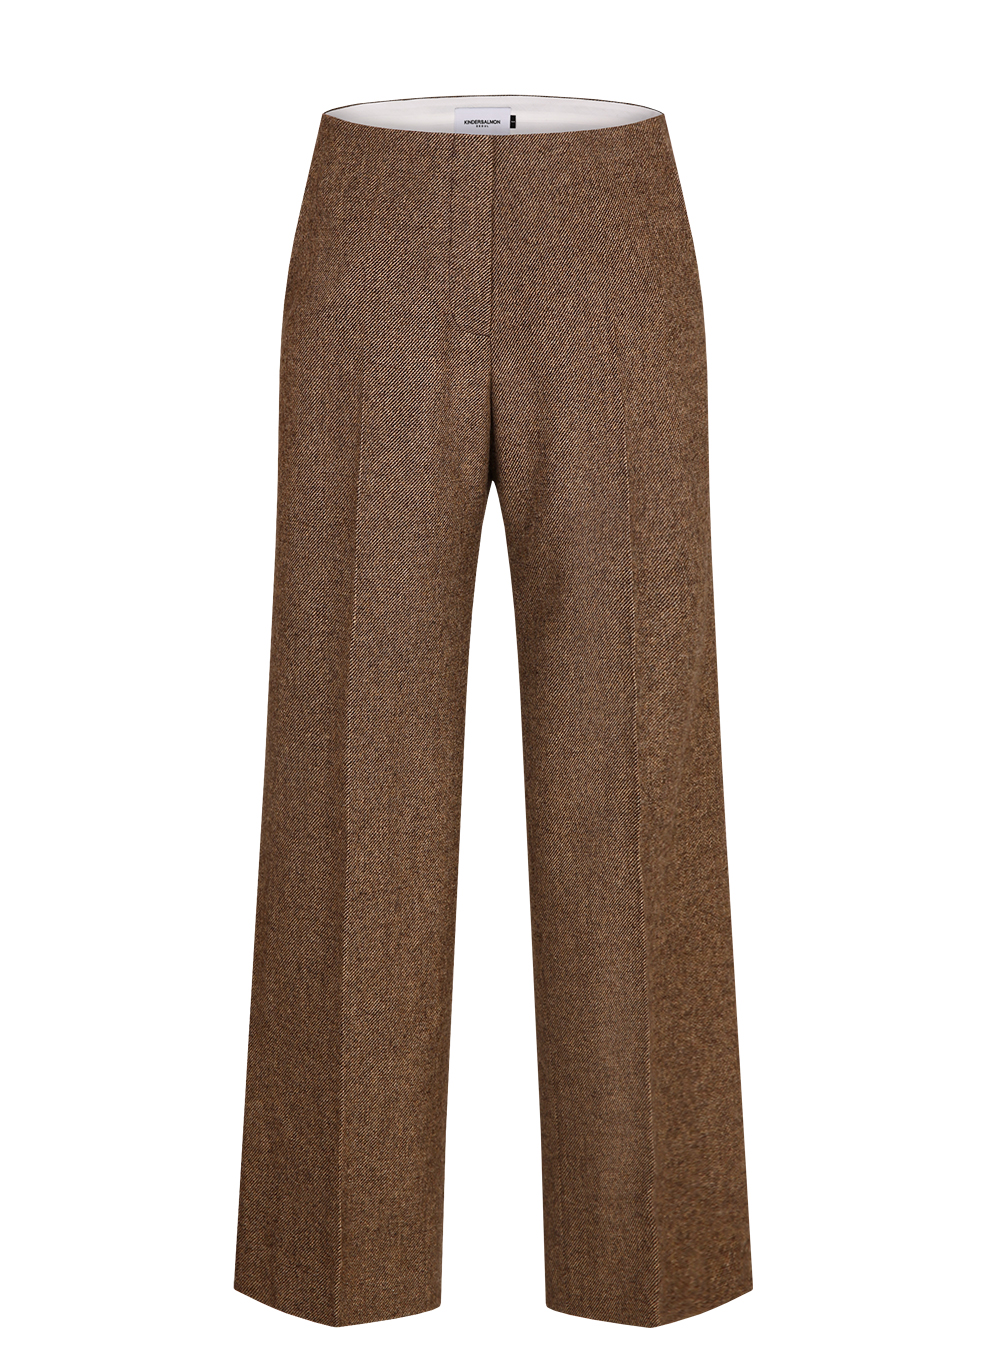 FW18 CLASSIC WOOL PANTS BROWN